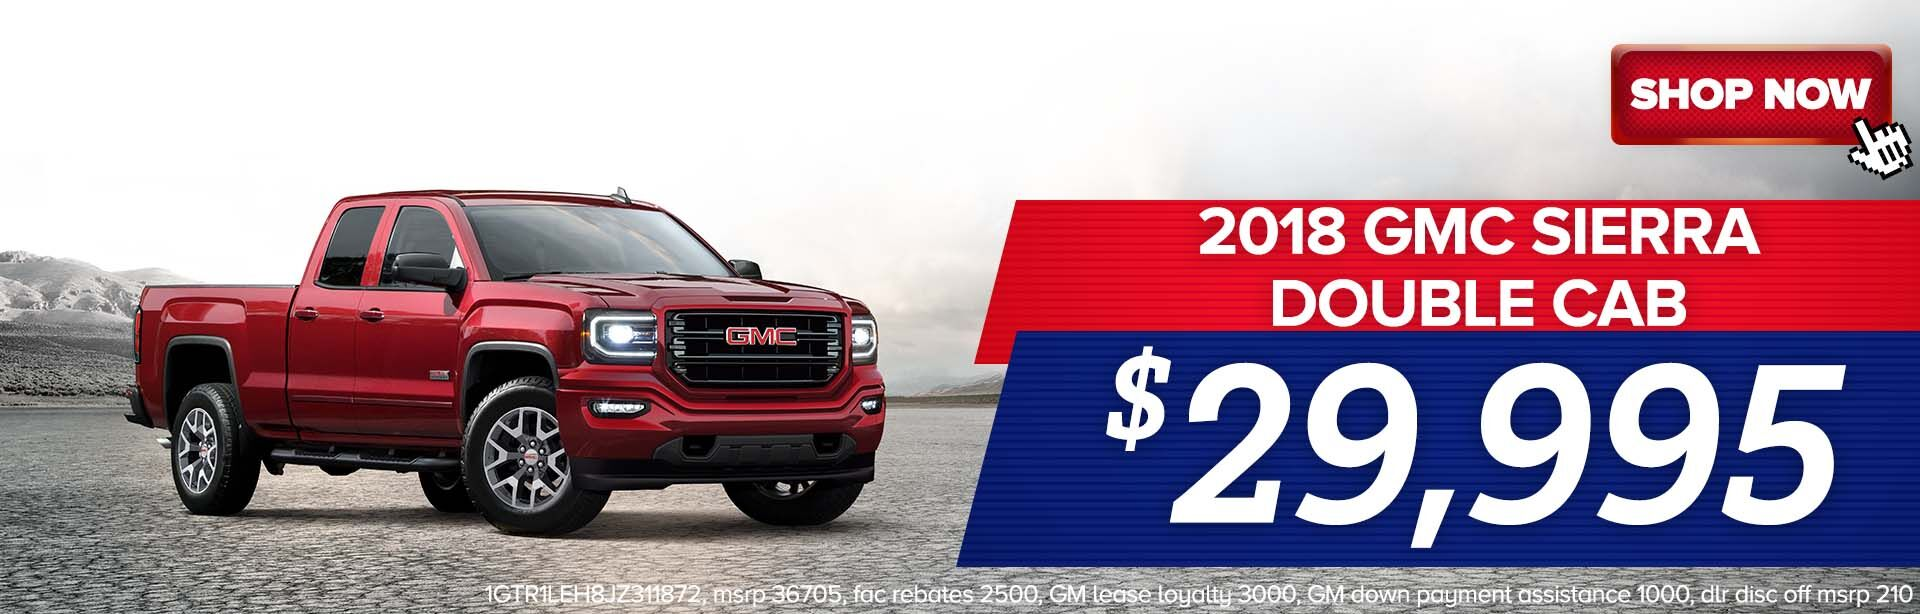 Nov 2018 GMC Sierra Double Cab